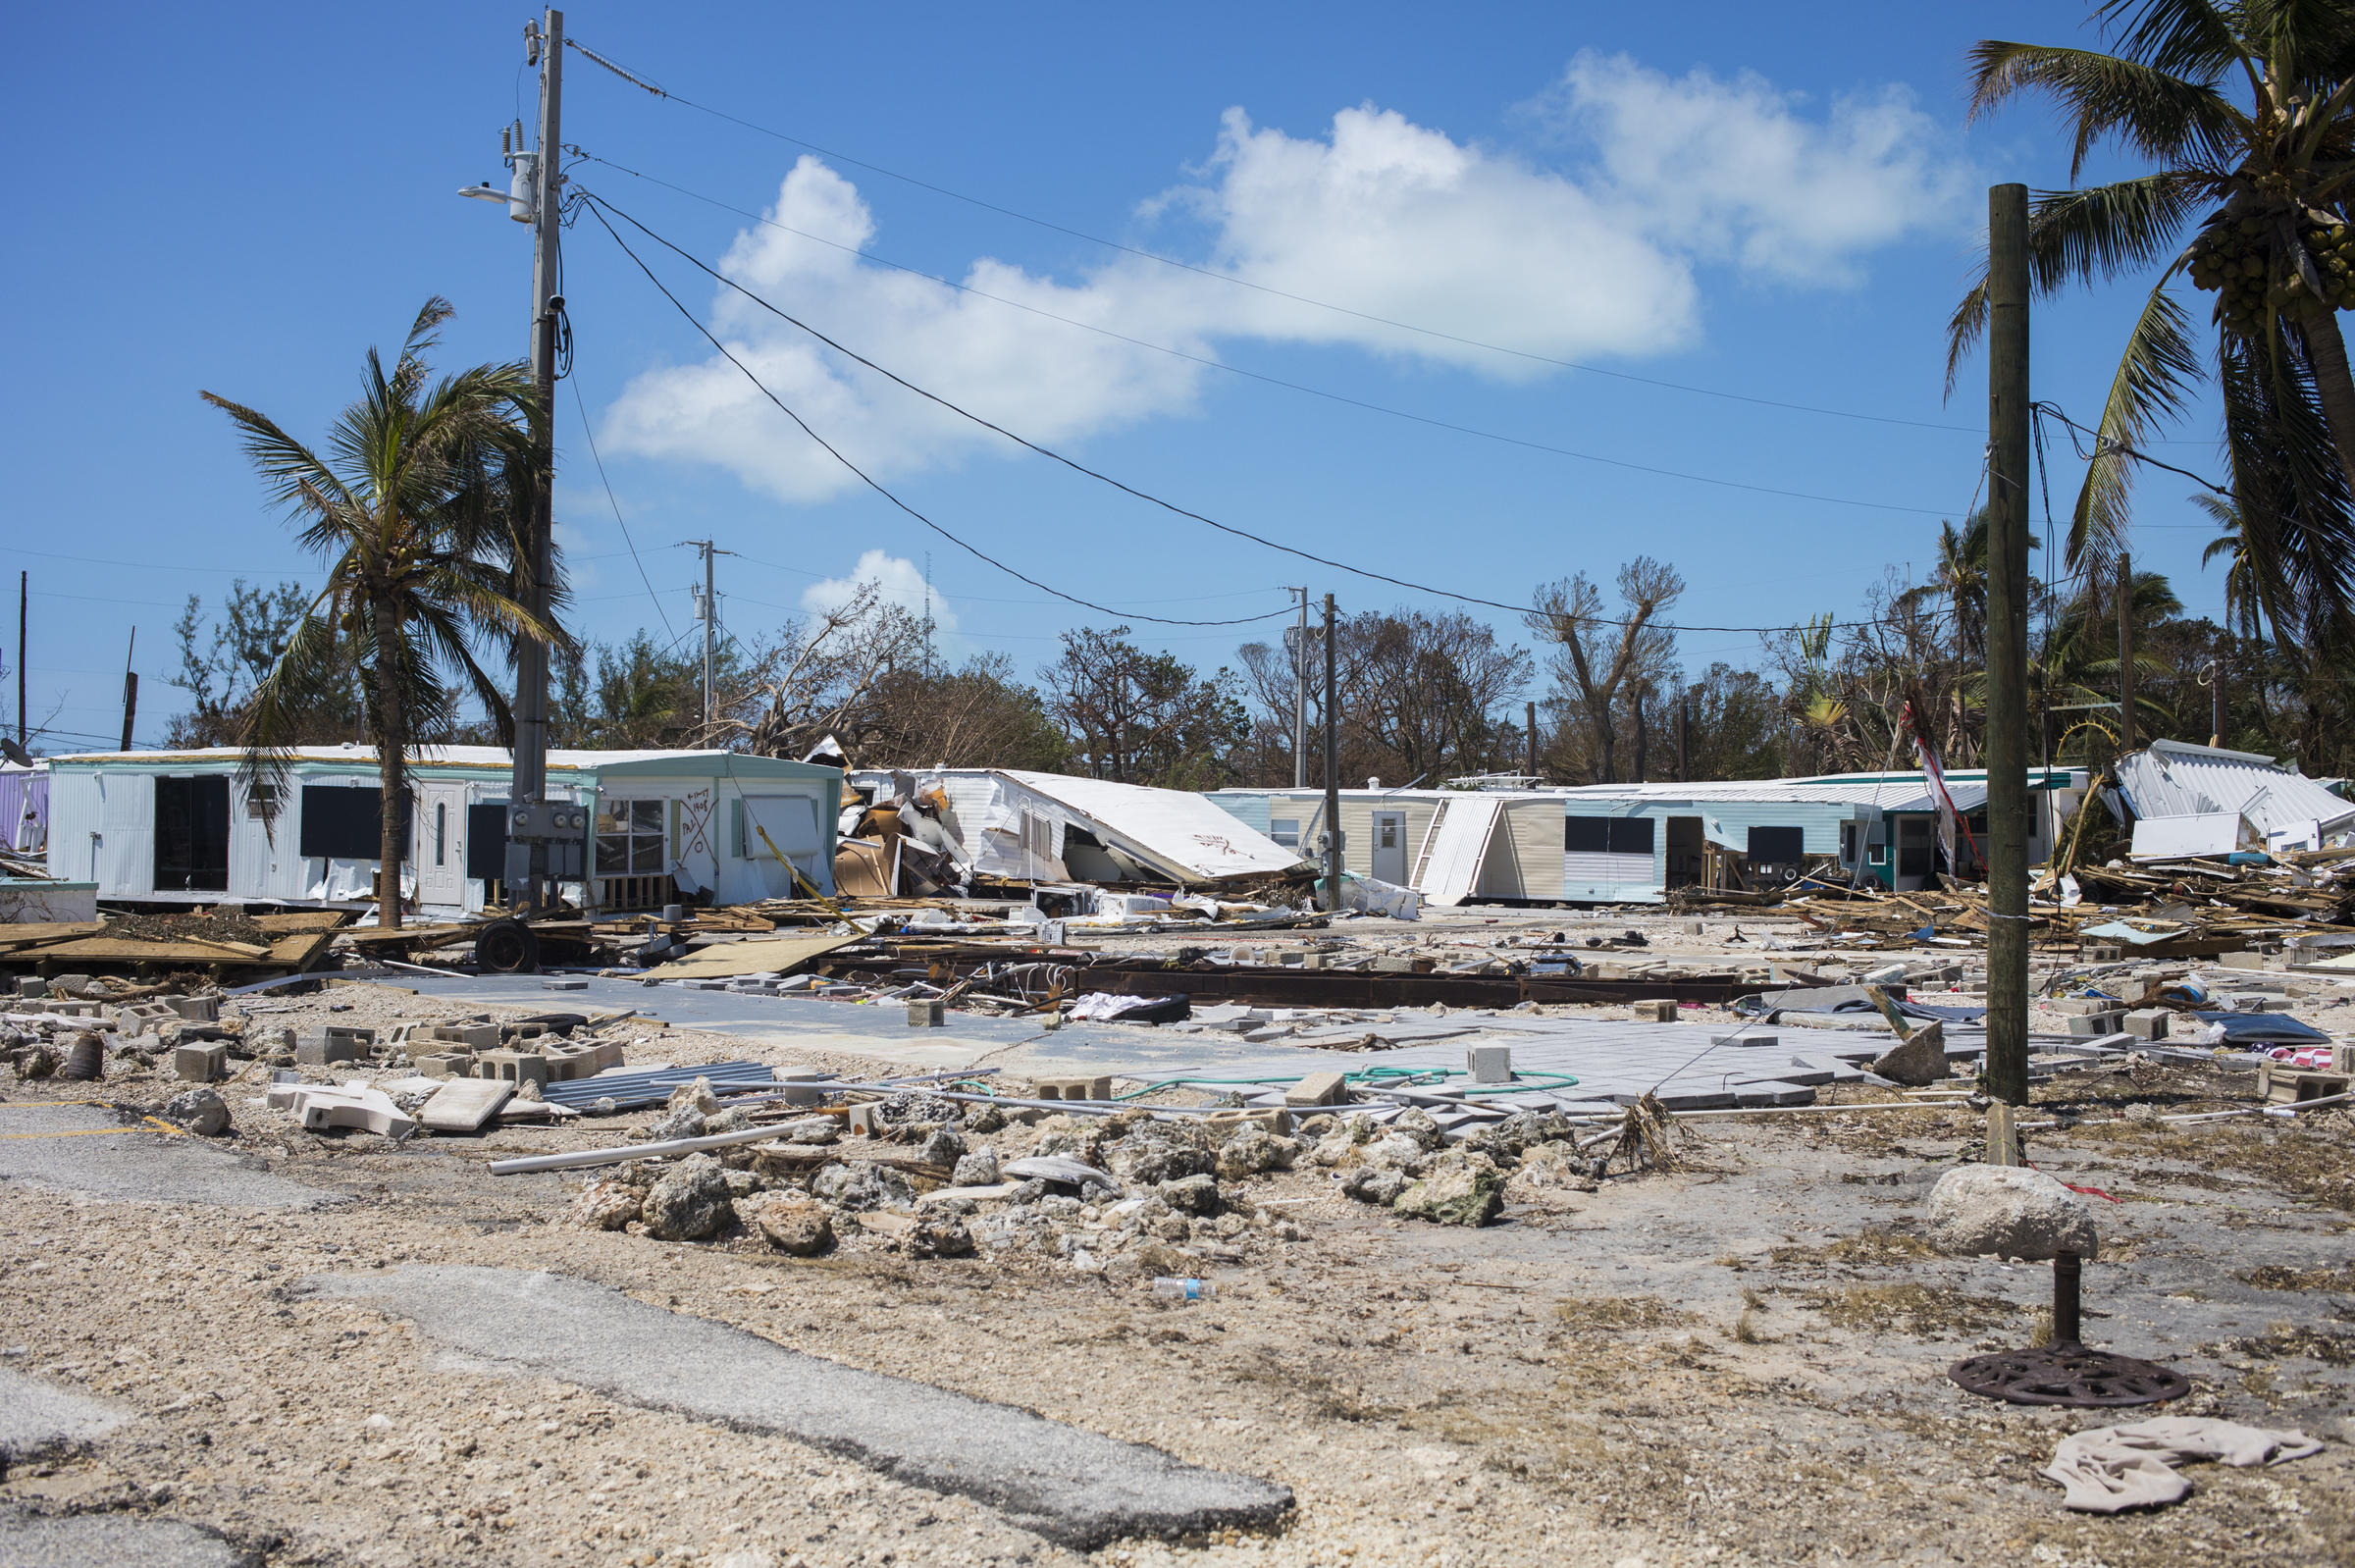 Hurricane Irma nearly demolished the Sea Breeze Mobile Home Community in Islamorada Fla. making the area unlivable